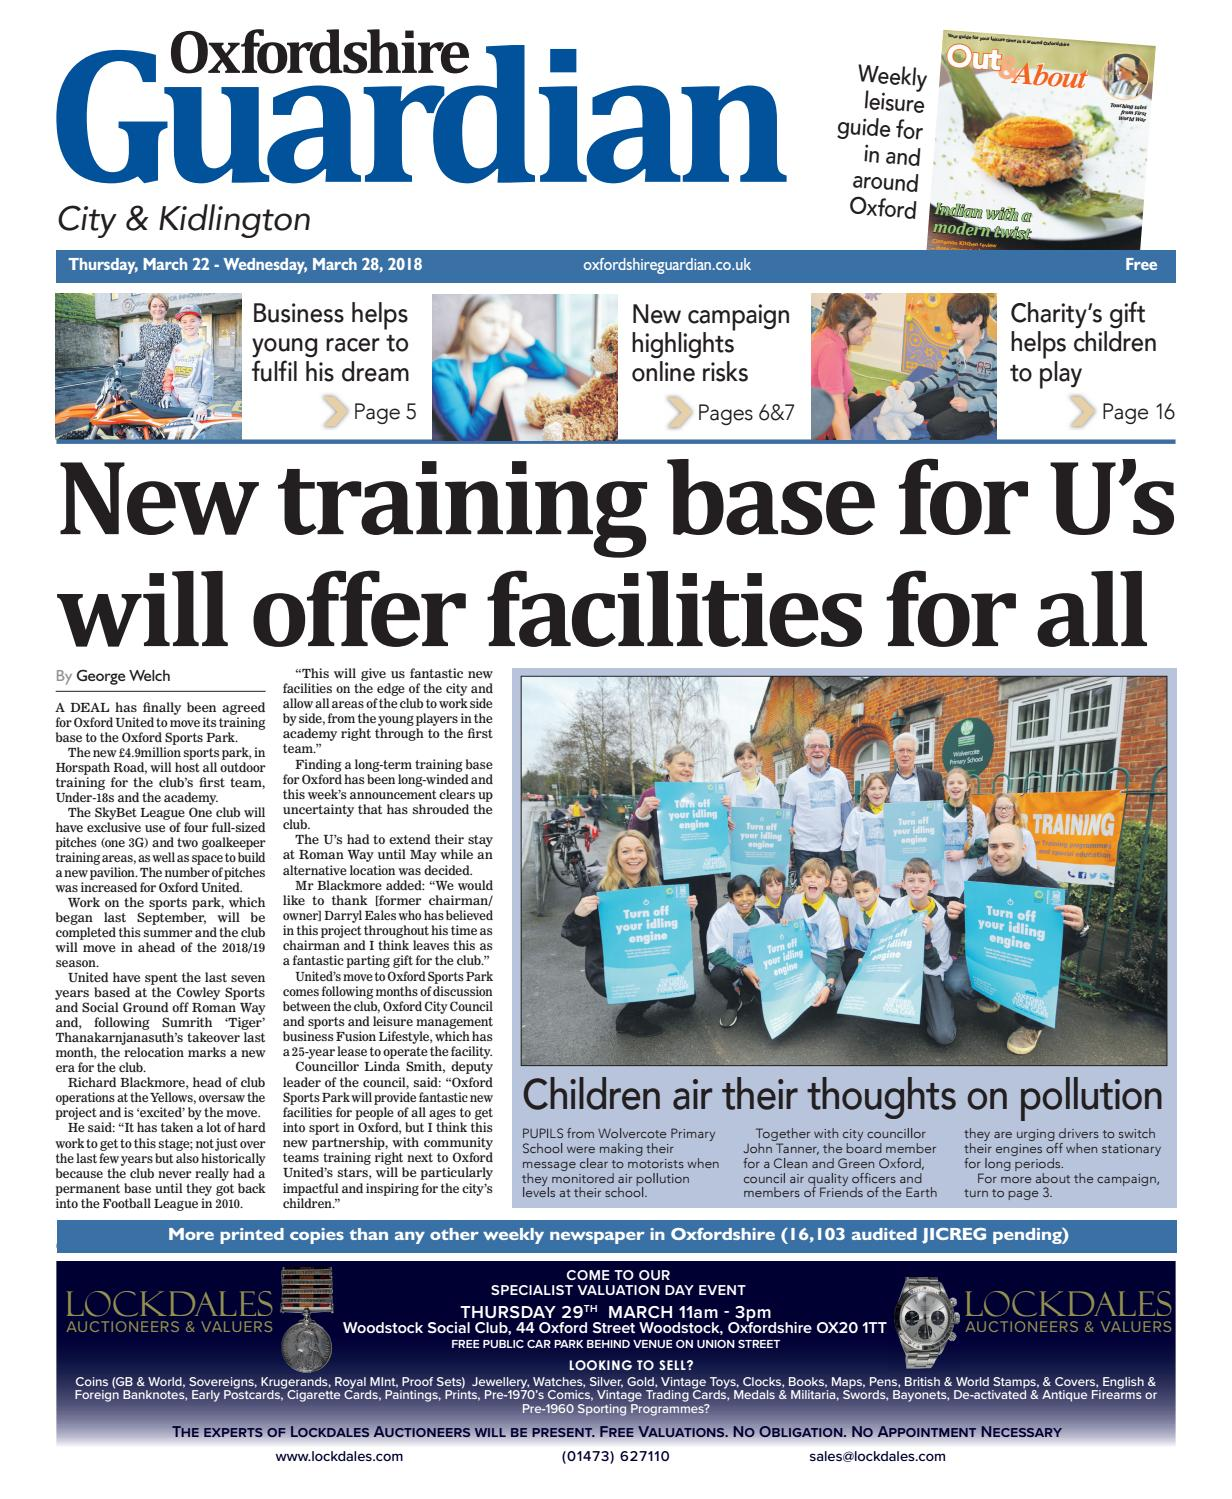 1ba9a9781271d8 15 march 2018 oxfordshire guardian city by Taylor Newspapers - issuu